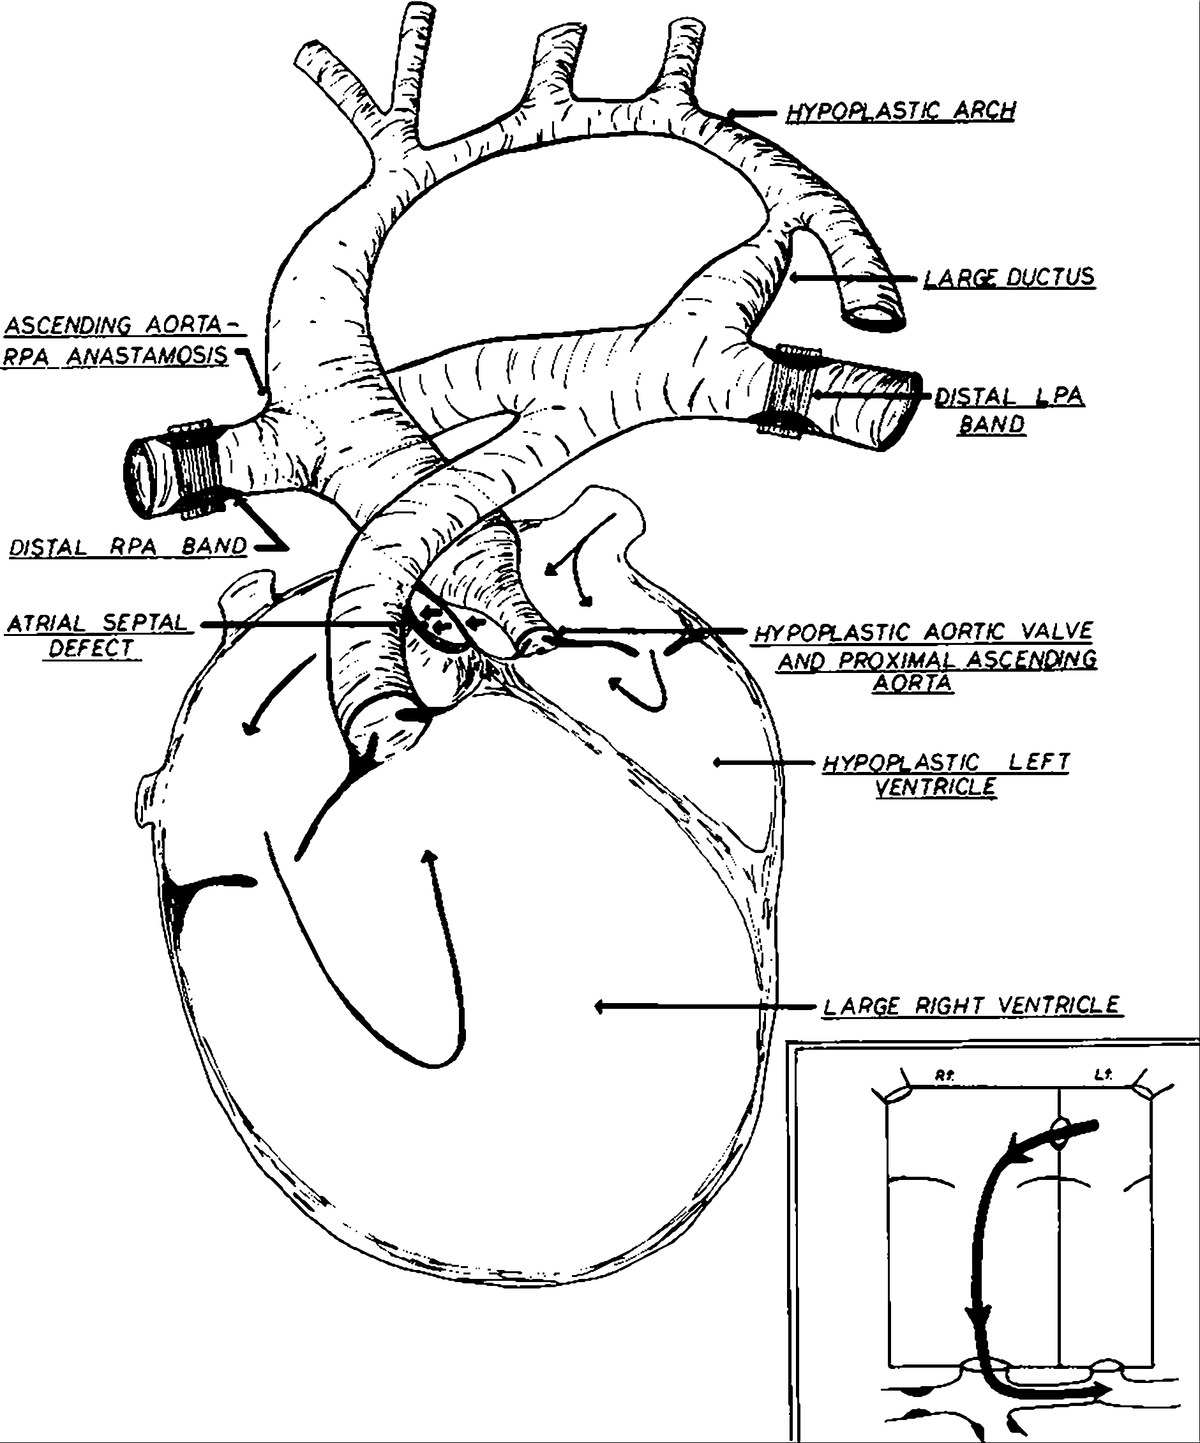 Surgical Palliation Of Hypoplastic Left Side Of The Heart